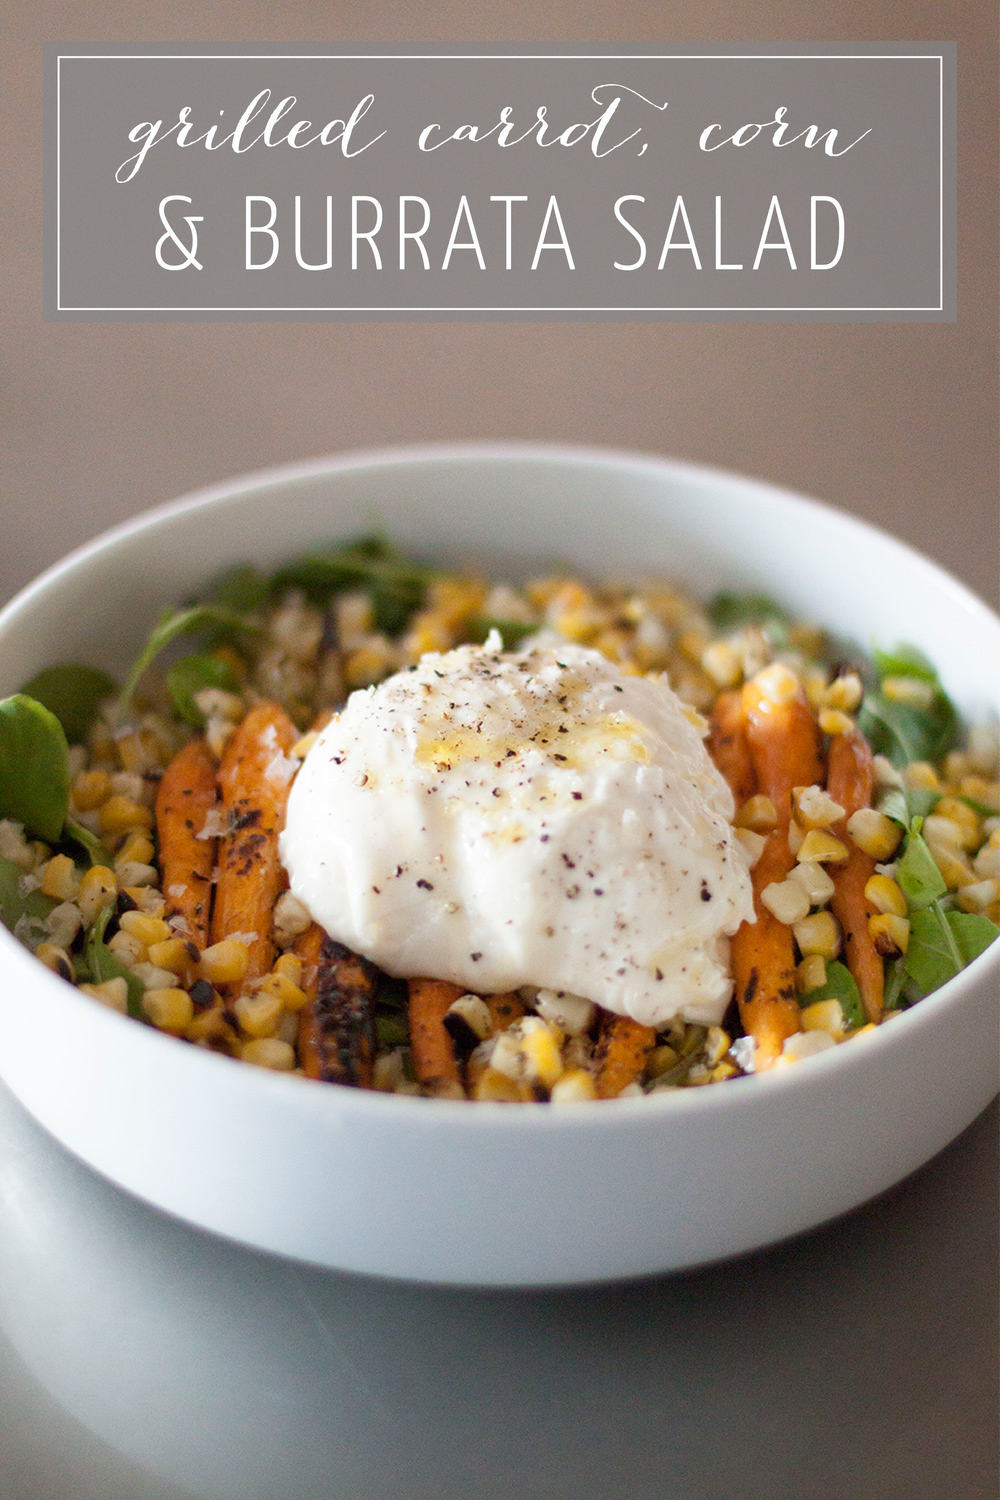 Recipe for Grilled Carrot and Burrata Salad with Arugula and Corn on Bubbles in Bucktown (bubblesinbucktown.com)